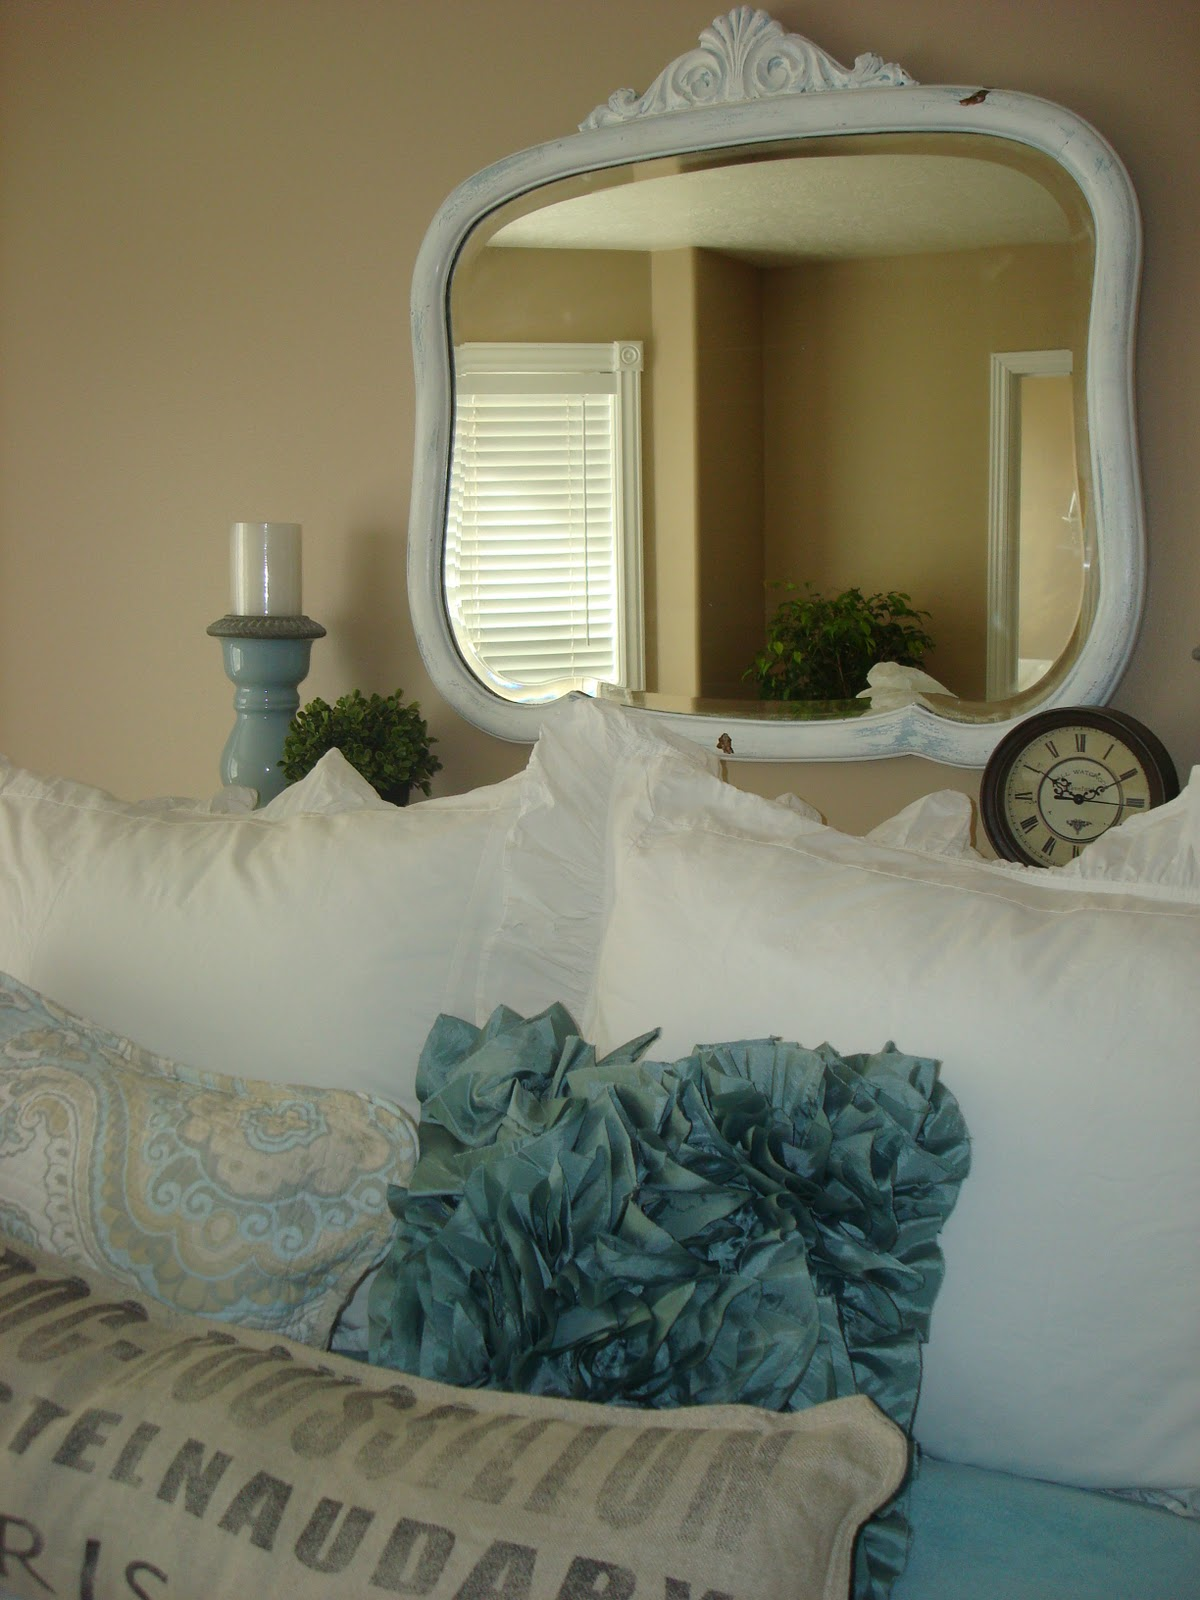 Imaginecozy Staging A Kitchen: ImagineCozy: Master Bedroom... Staged To Sell